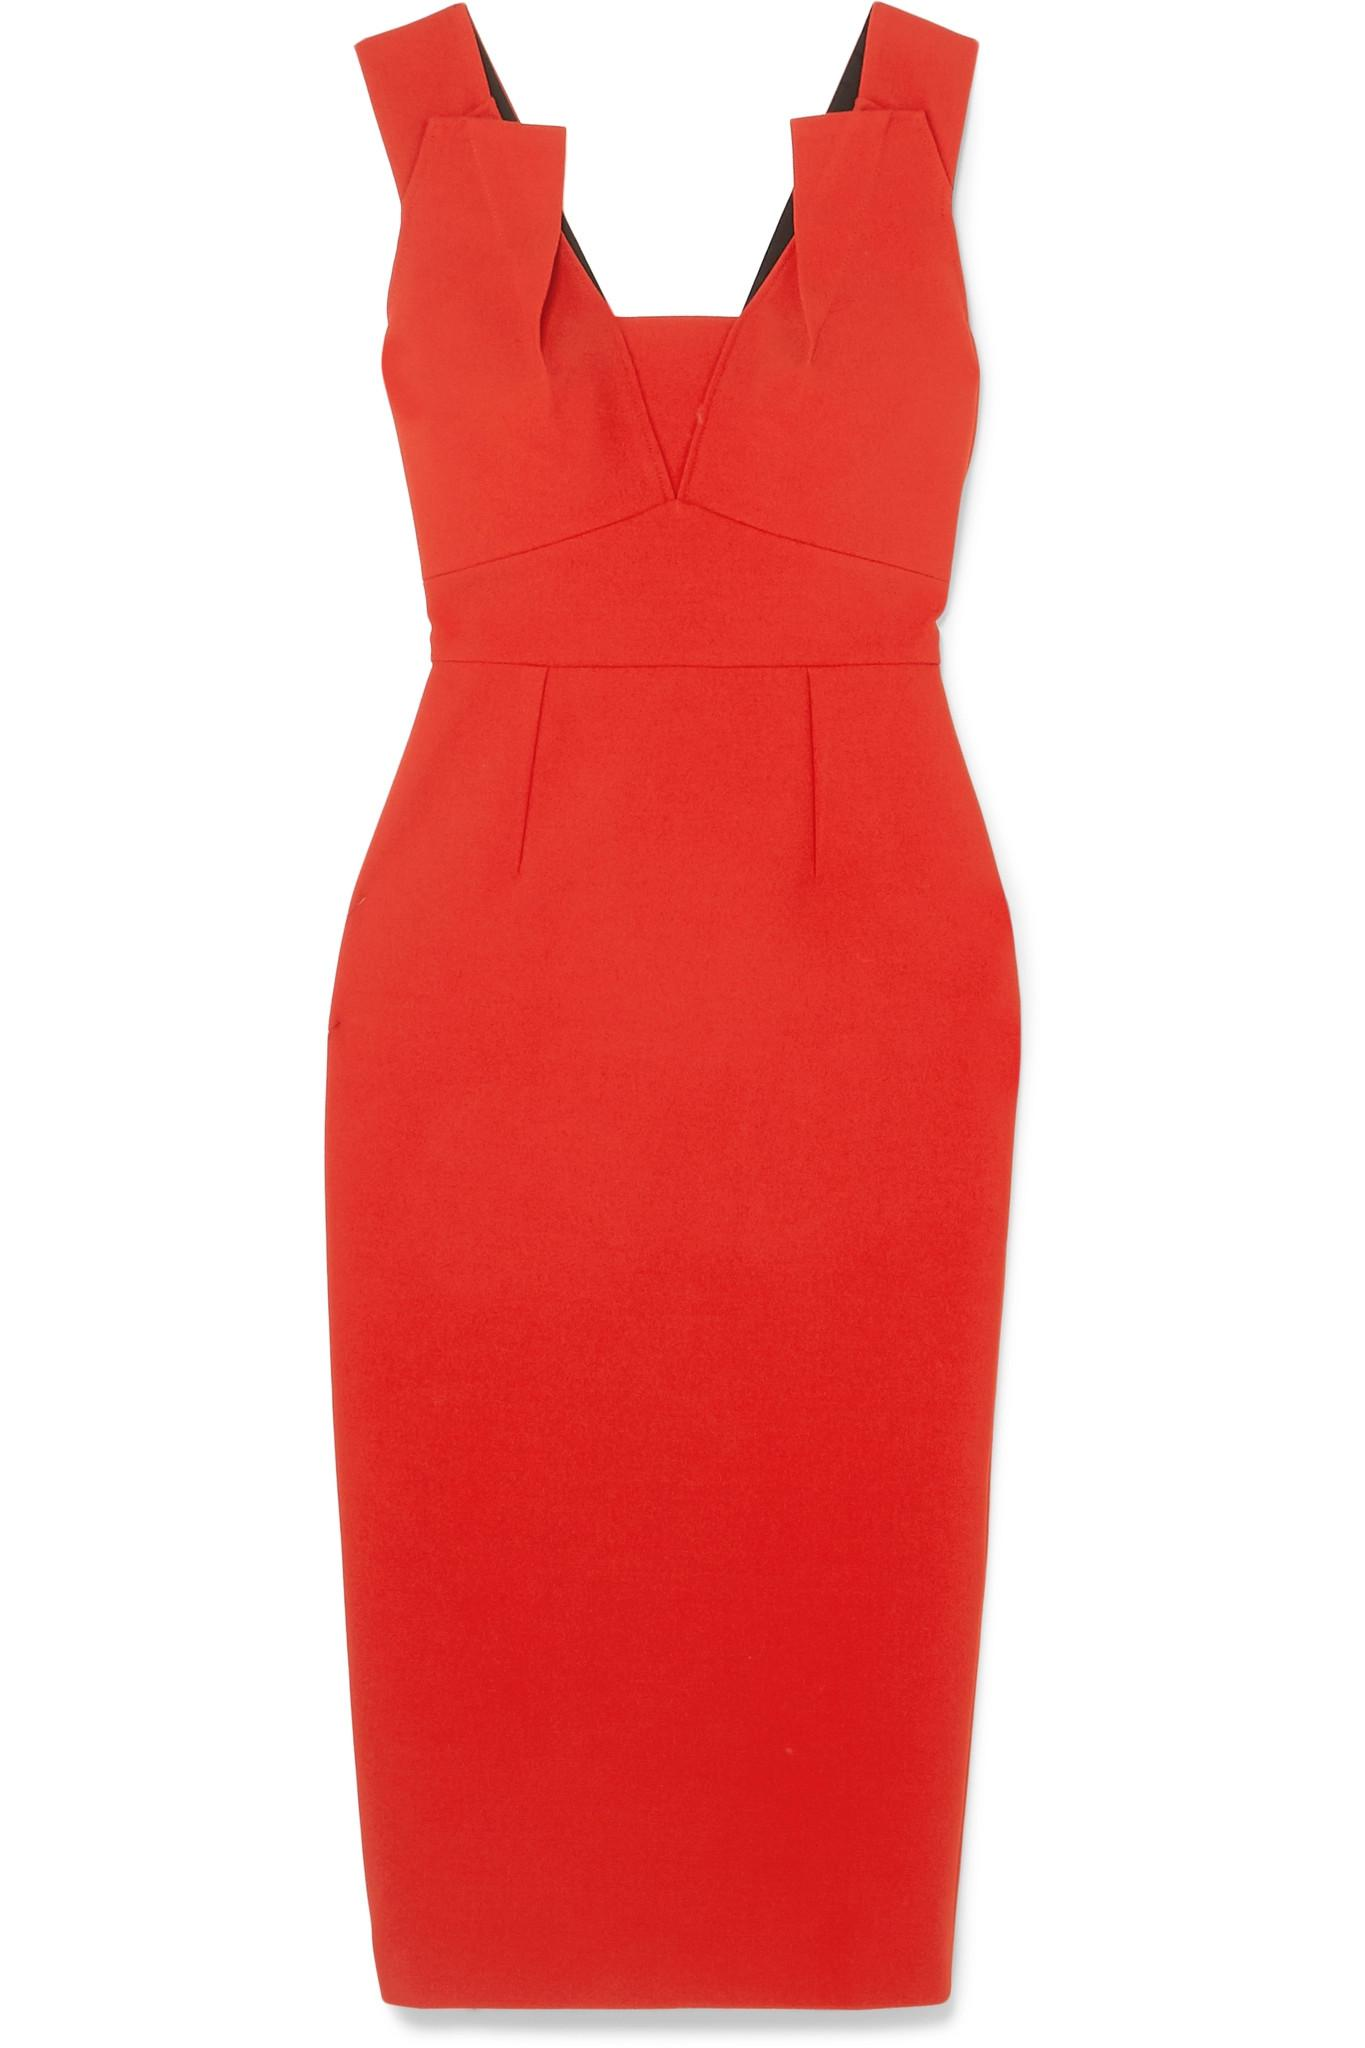 69c7e7d00c4fc Roland Mouret Coleby Dress in Red - Save 35% - Lyst